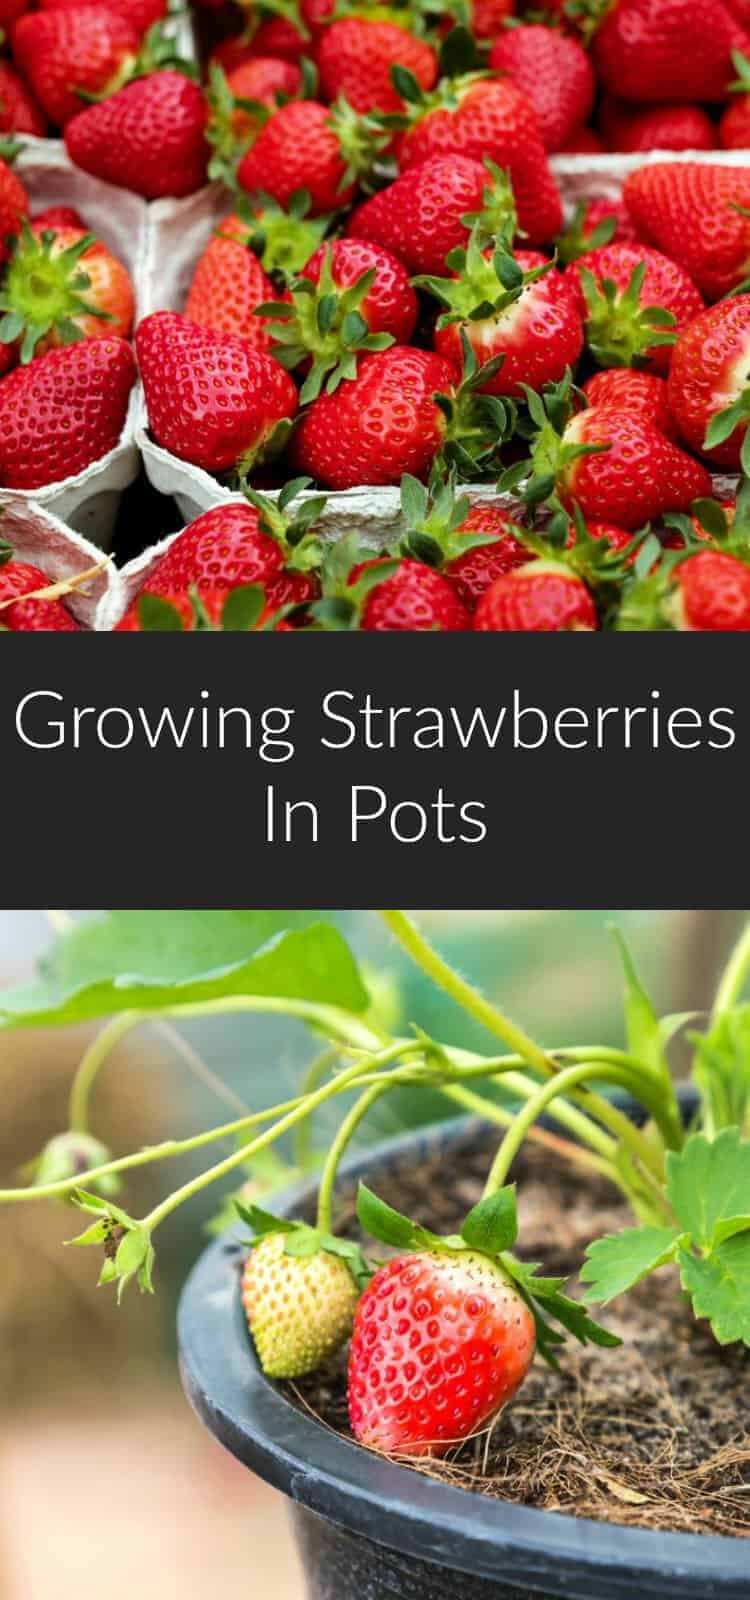 Growing strawberries in pots is an age-old practice, and an incredibly easy way to grow your own berries if you have limited gardening space. Learn everything you need to know to have a successful strawberry harvest. #strawberries #gardening #growyourown #greenthumb #diy